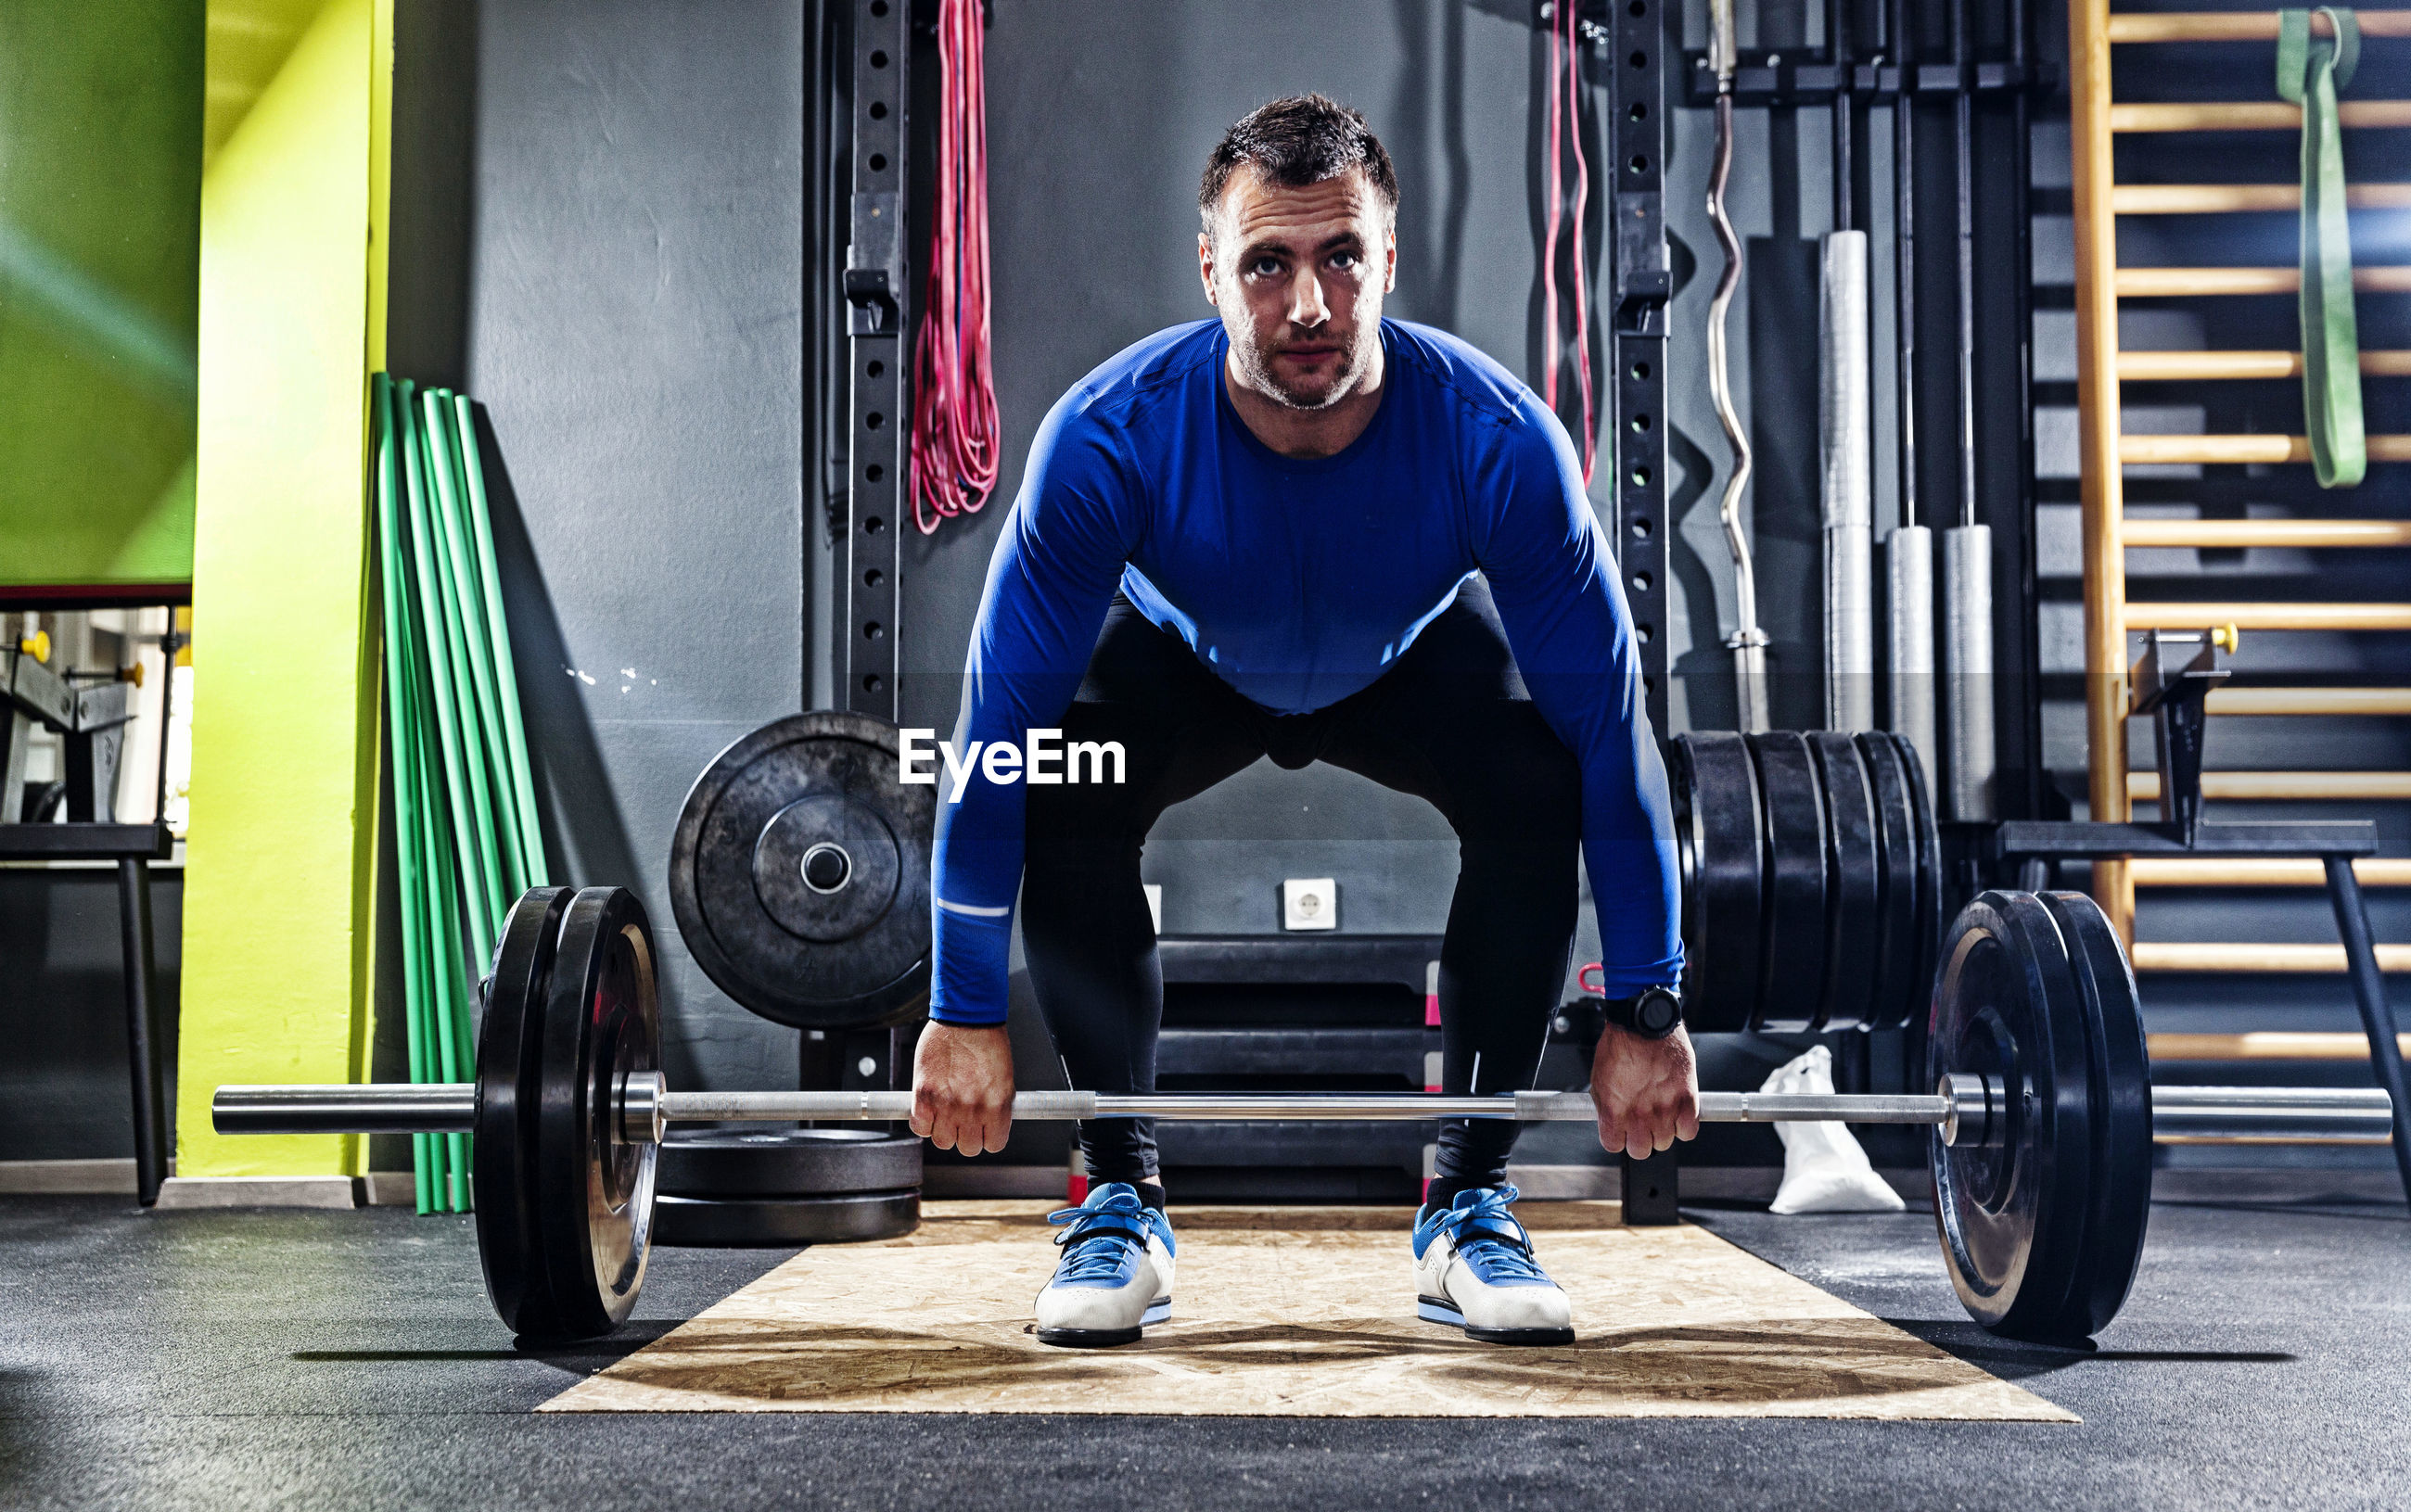 Young man weightlifting at gym